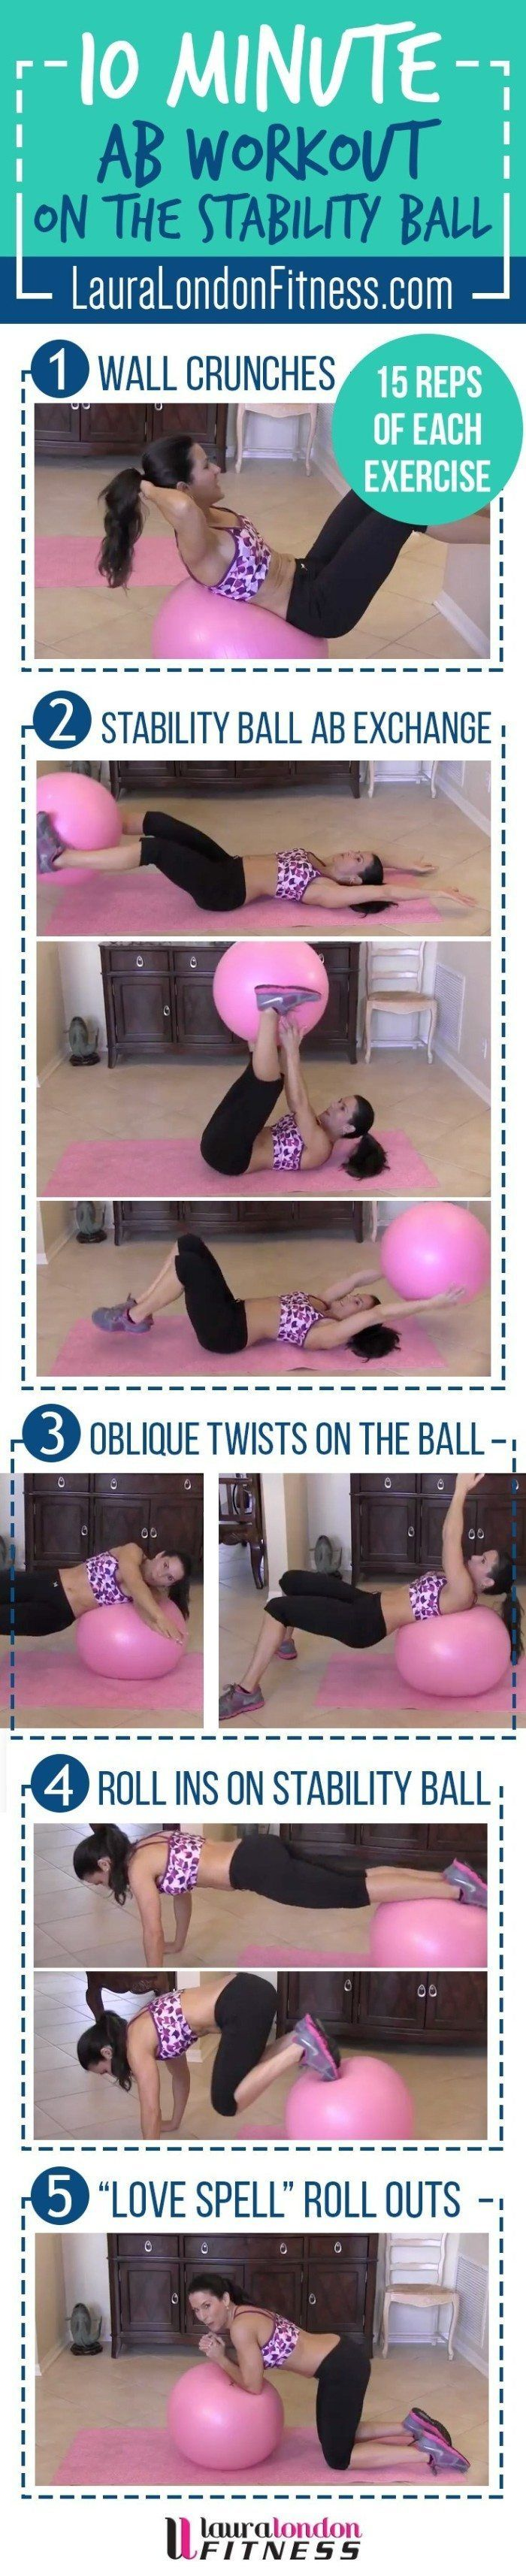 10-Minute-Ab-Workout-on-the-Stability-Ball with Laura London via @fitfluential